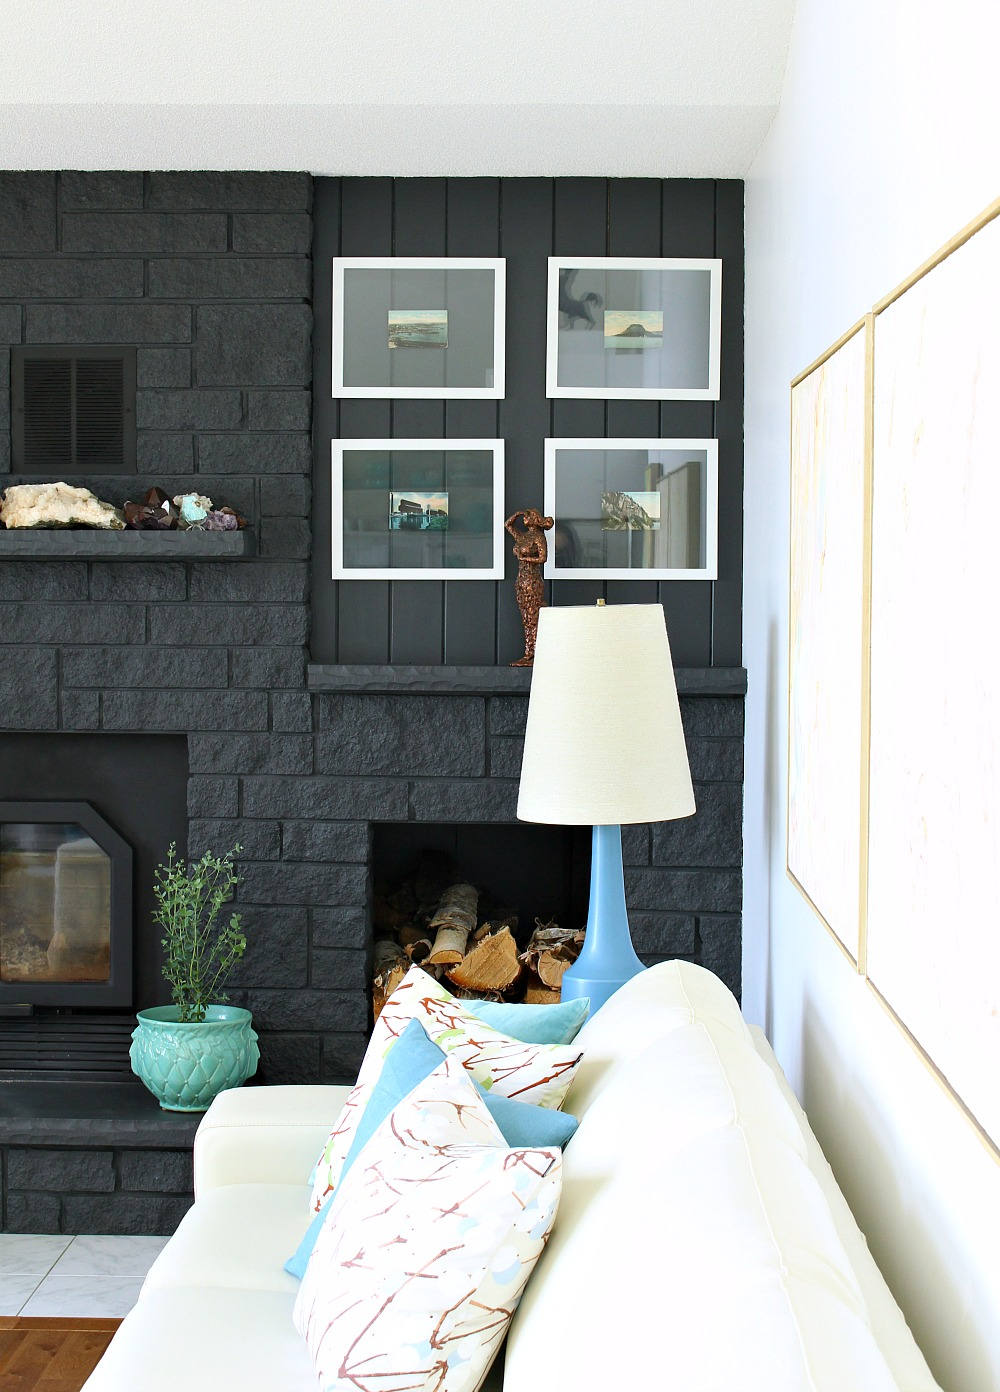 Fireplace Painted Dark Grey with Rock Collection on Display